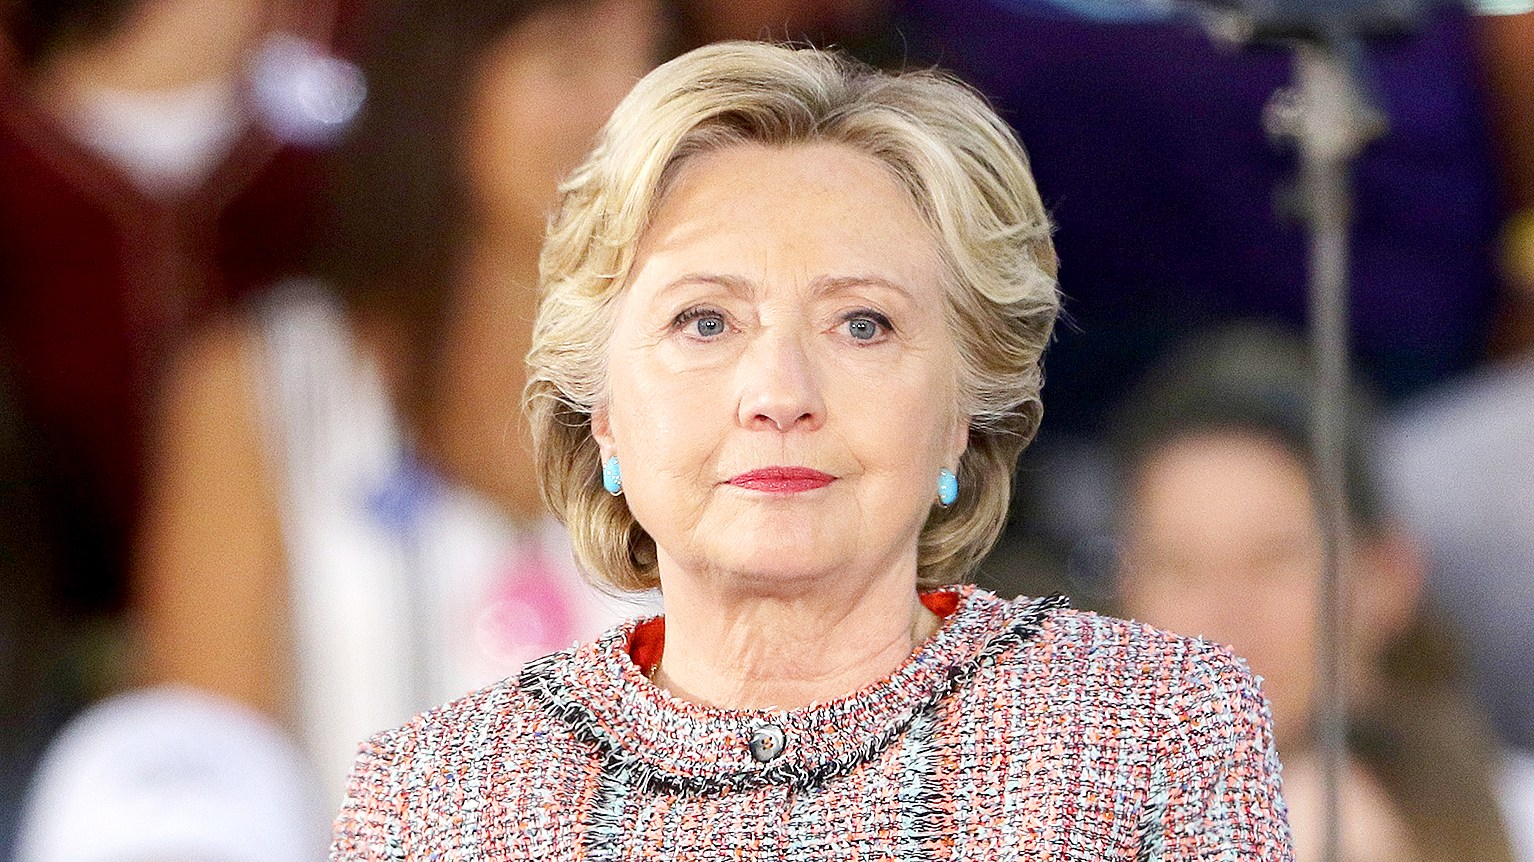 Hillary Clinton is seen during a campaign rally with former Vice President Al Gore at the Miami Dade College - Kendall Campus, Theodore Gibson Center on October 11, 2016 in Miami, Florida.